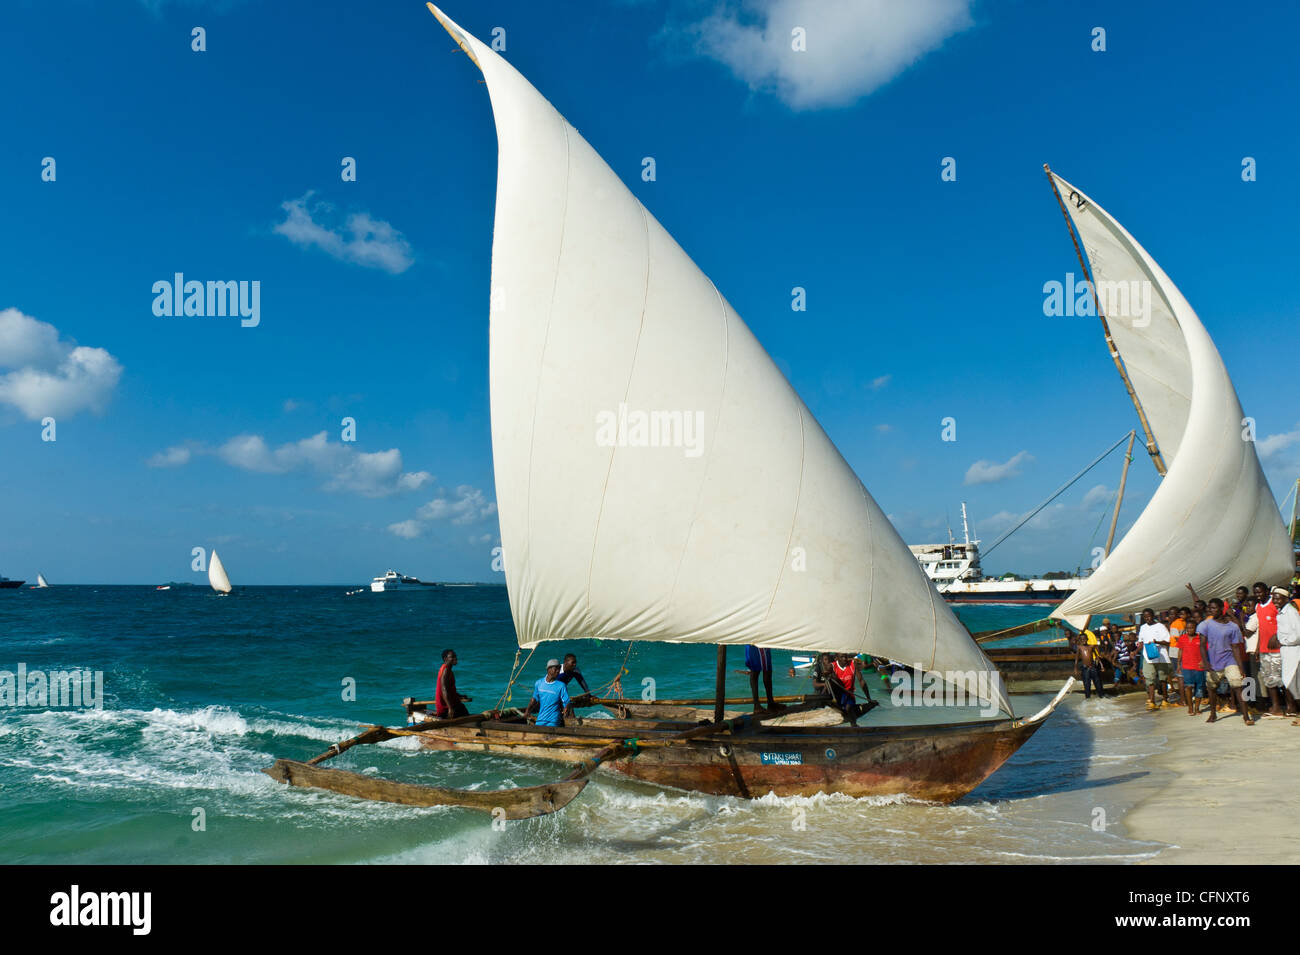 'Ngalawa' traditional out-rigger fishing boats arriving at the finish of a regatta in Stone Town Zanzibar - Stock Image